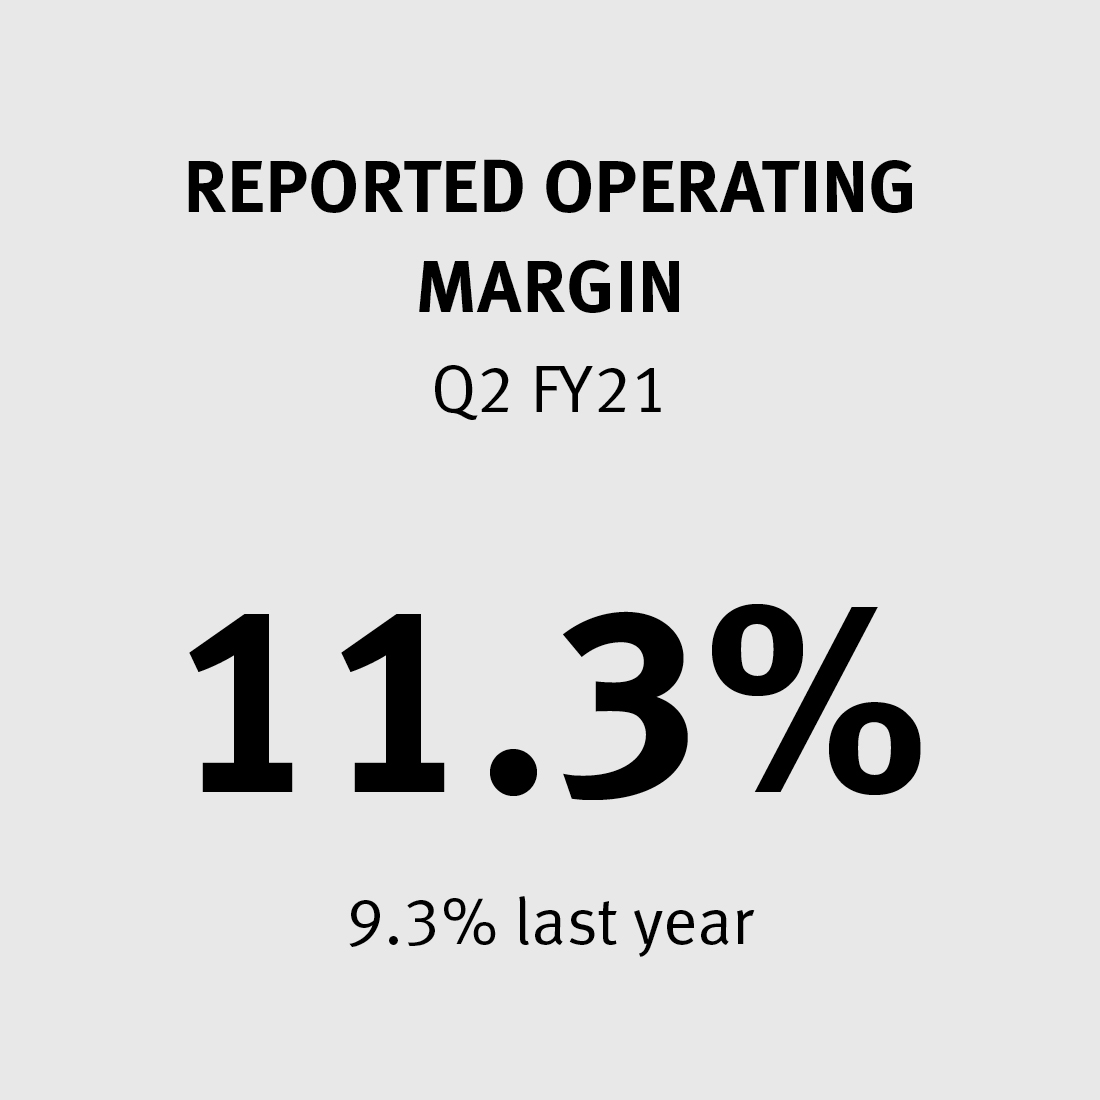 Reported Operating Margin 11.3% (9.3% last year)